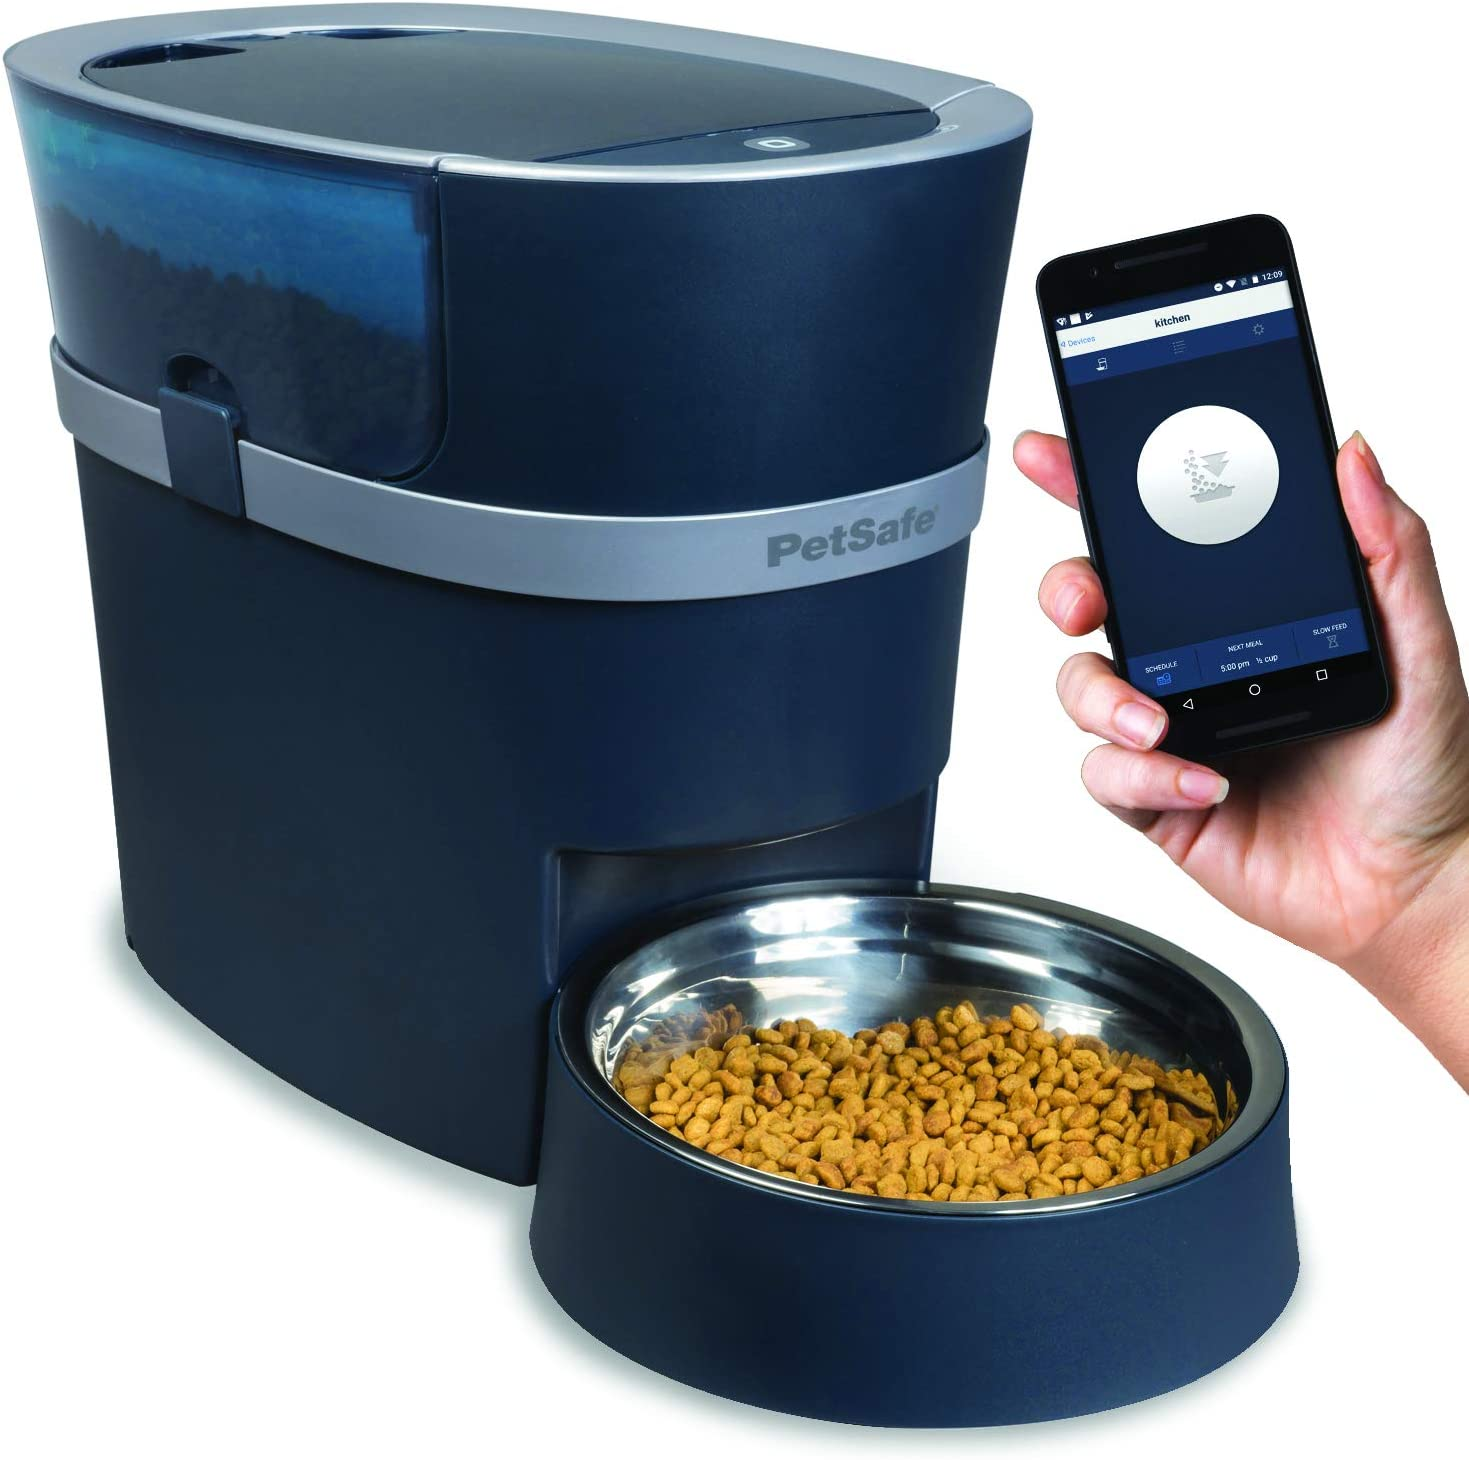 PetSafe Smart Feed Automatic Dog Product and Our shop most popular Cat Feeder - Smartphone W